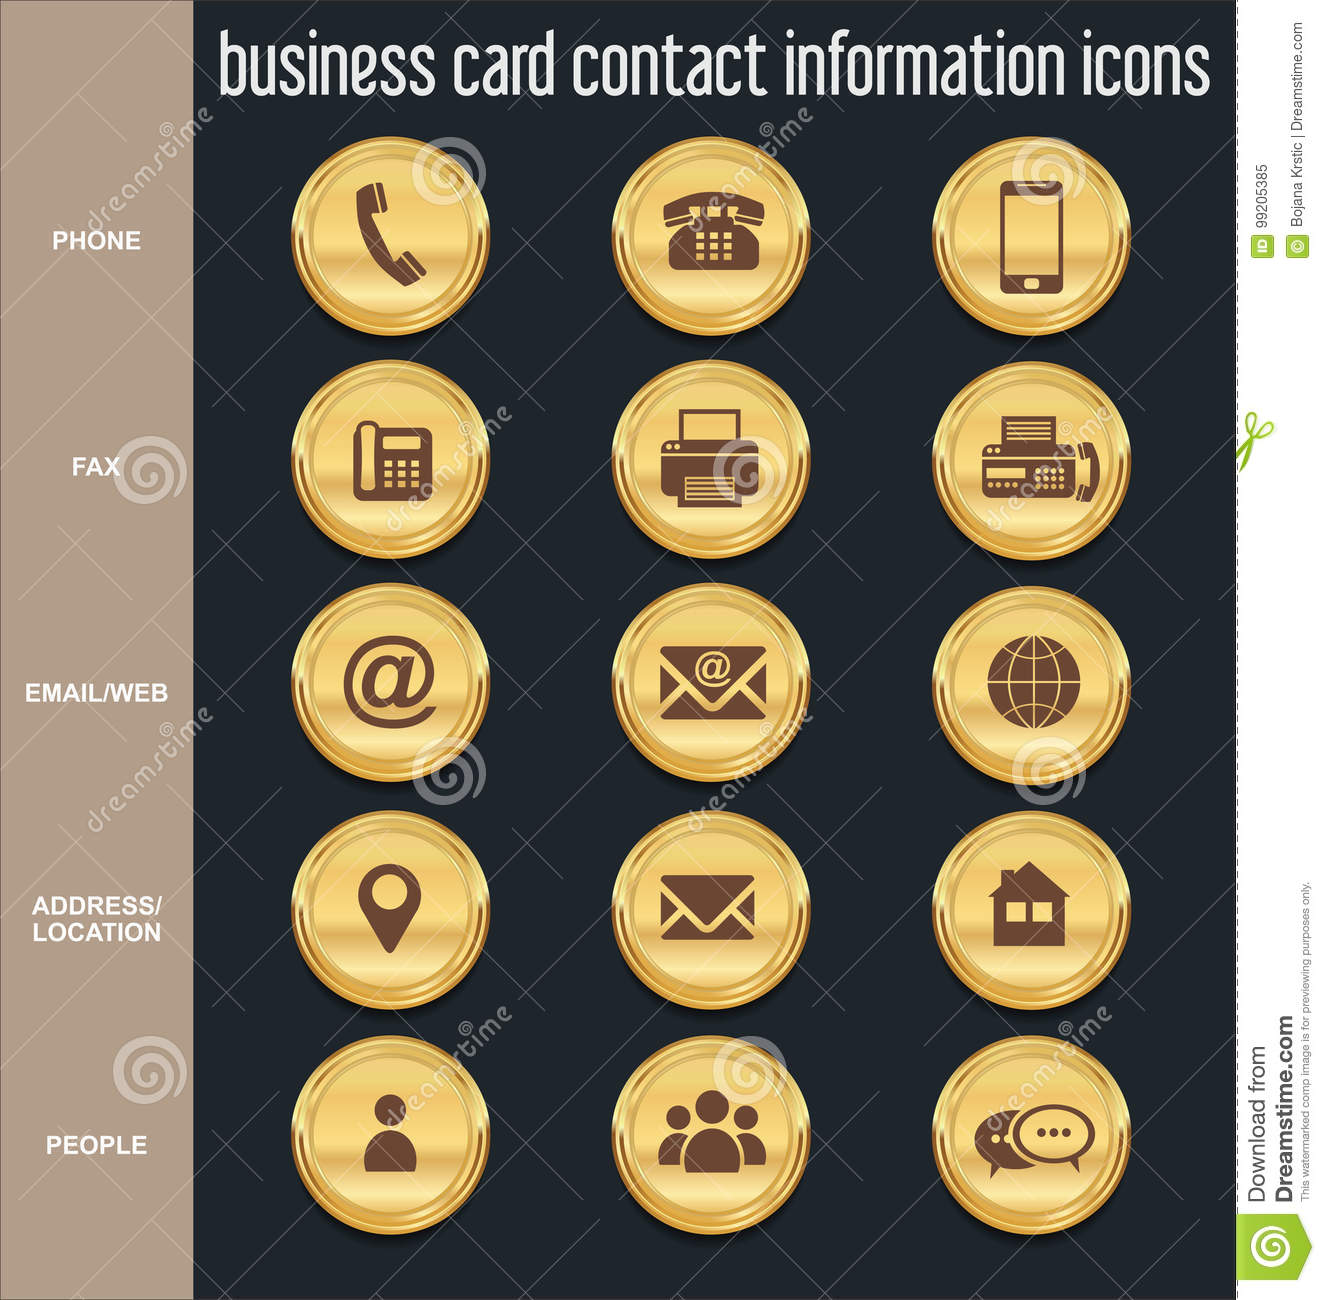 Business Contact: Business Card Contact Information Icons Collection Stock